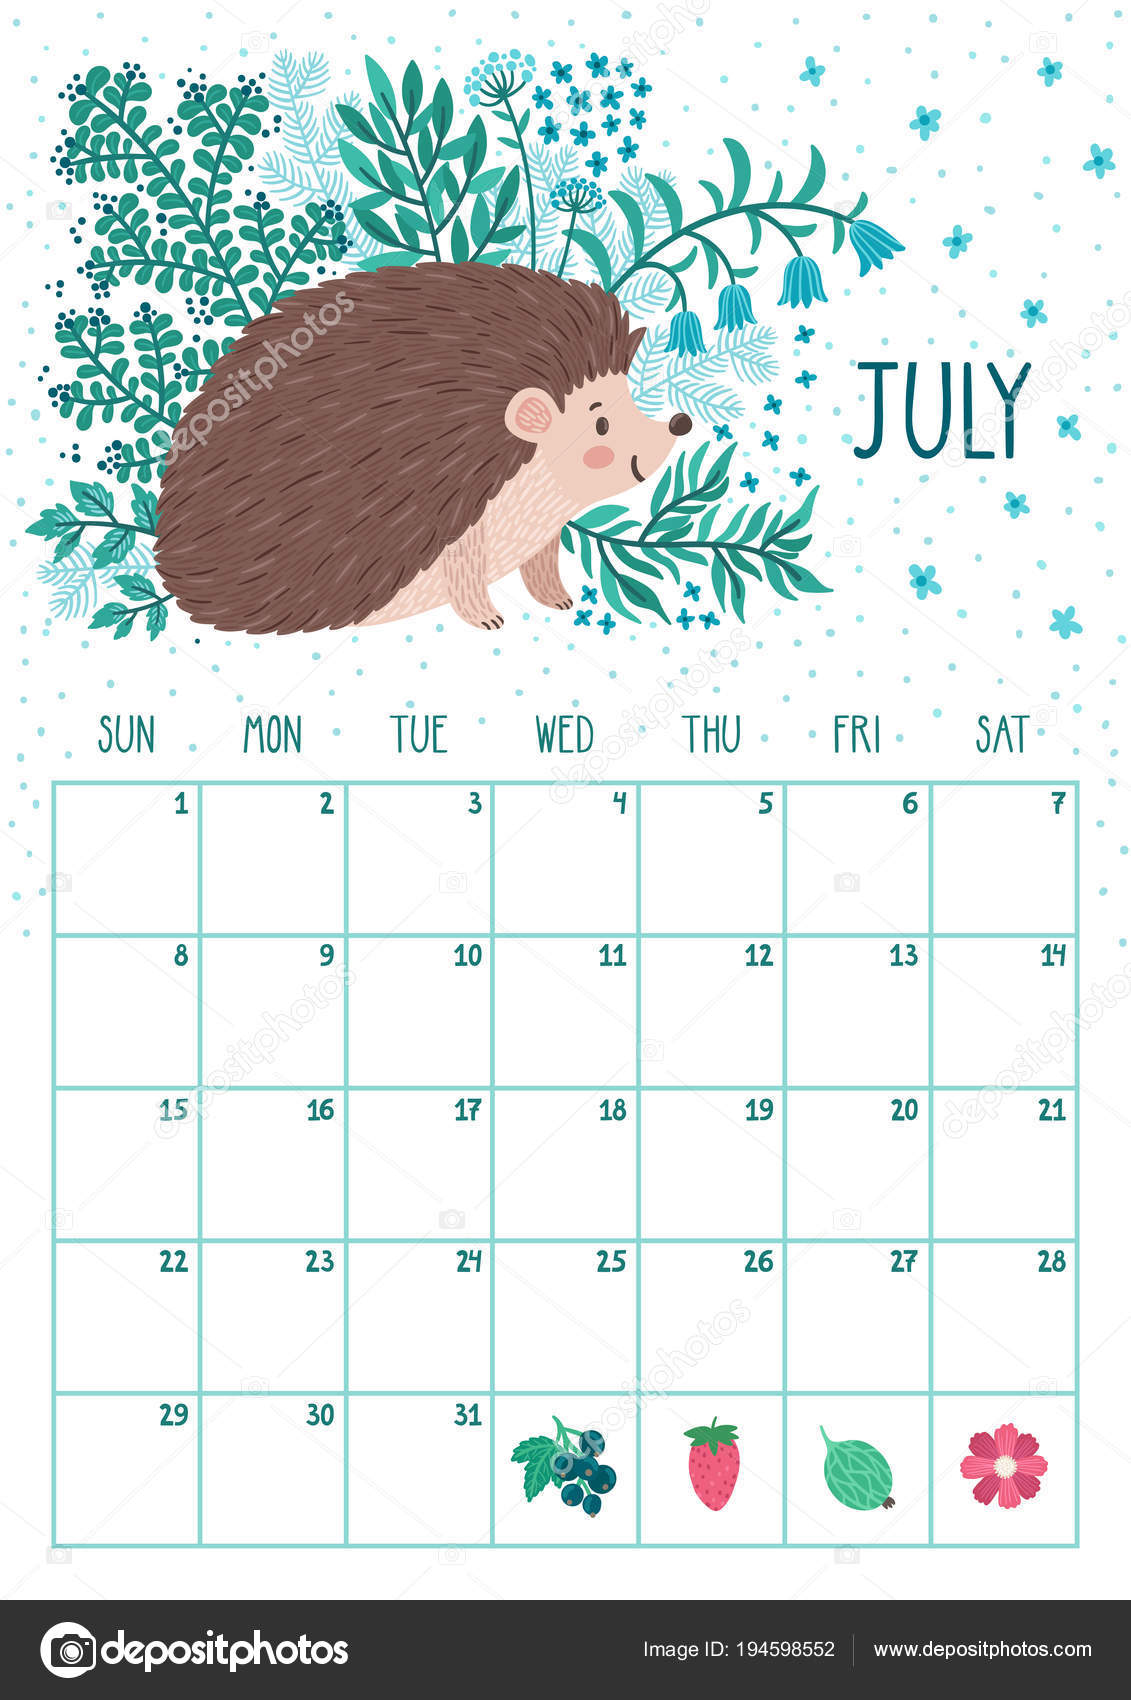 vector monthly calendar with cute hedgehog july 2018 planning